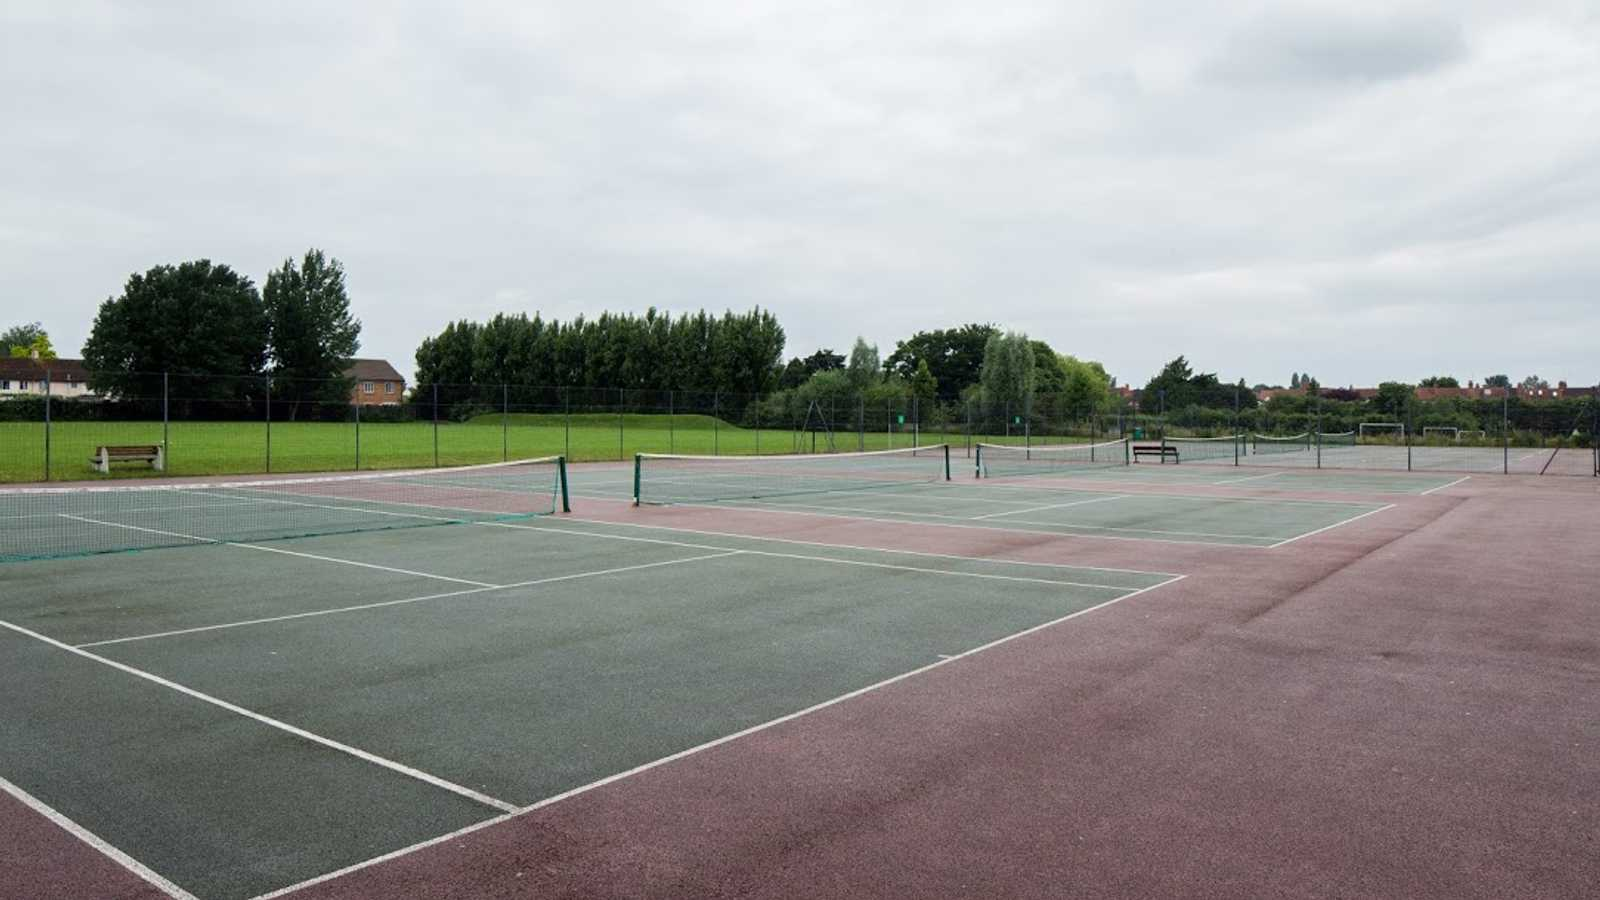 Six full size outdoor tennis courts